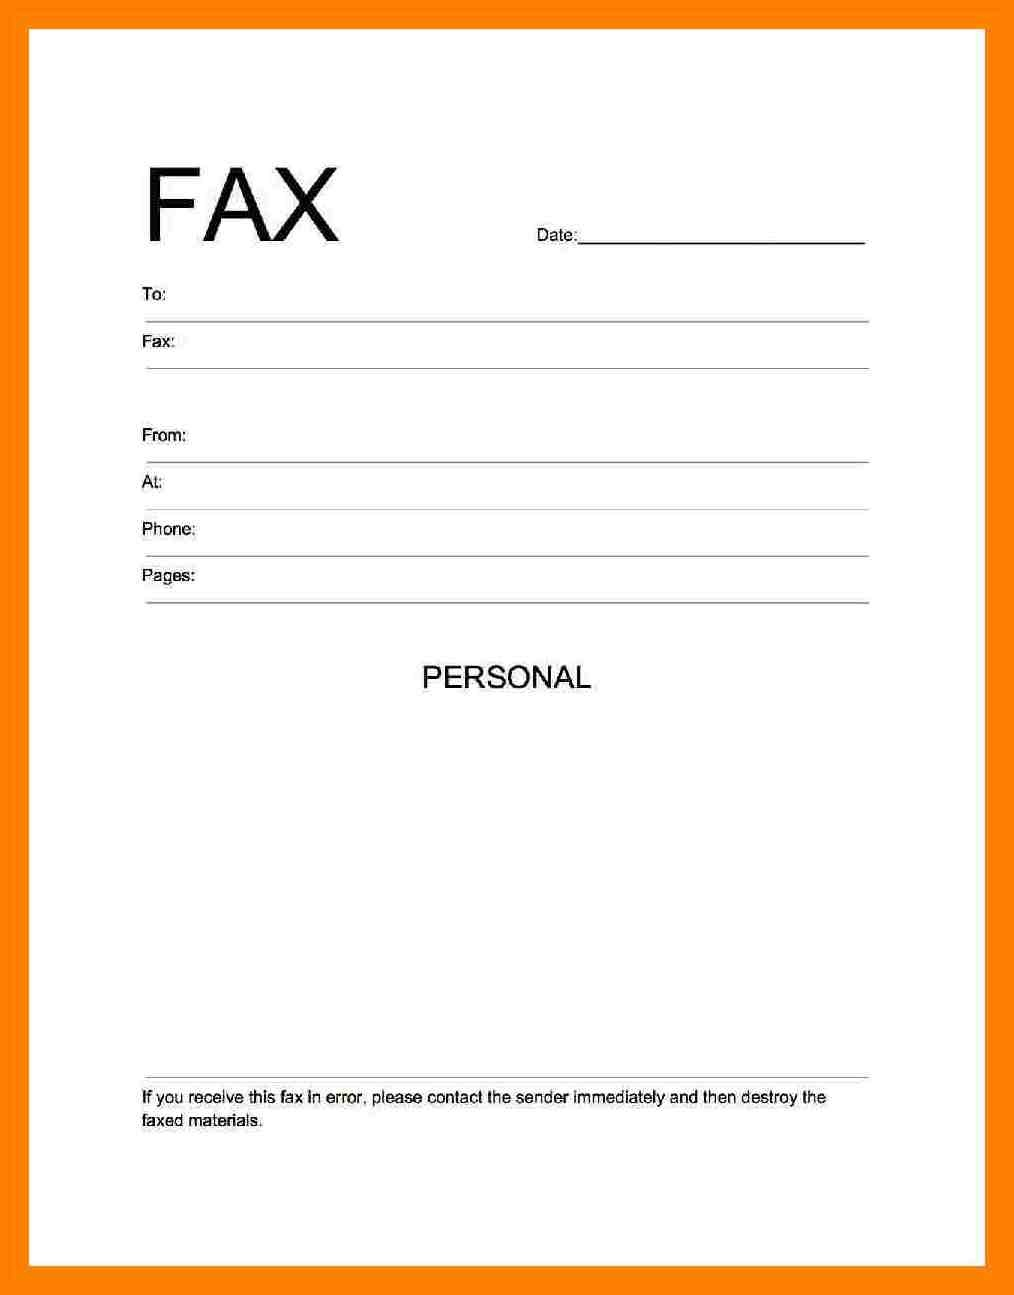 Fax Cover Sheet Pdf Free Download - Free Printable Fax Cover Sheet Pdf